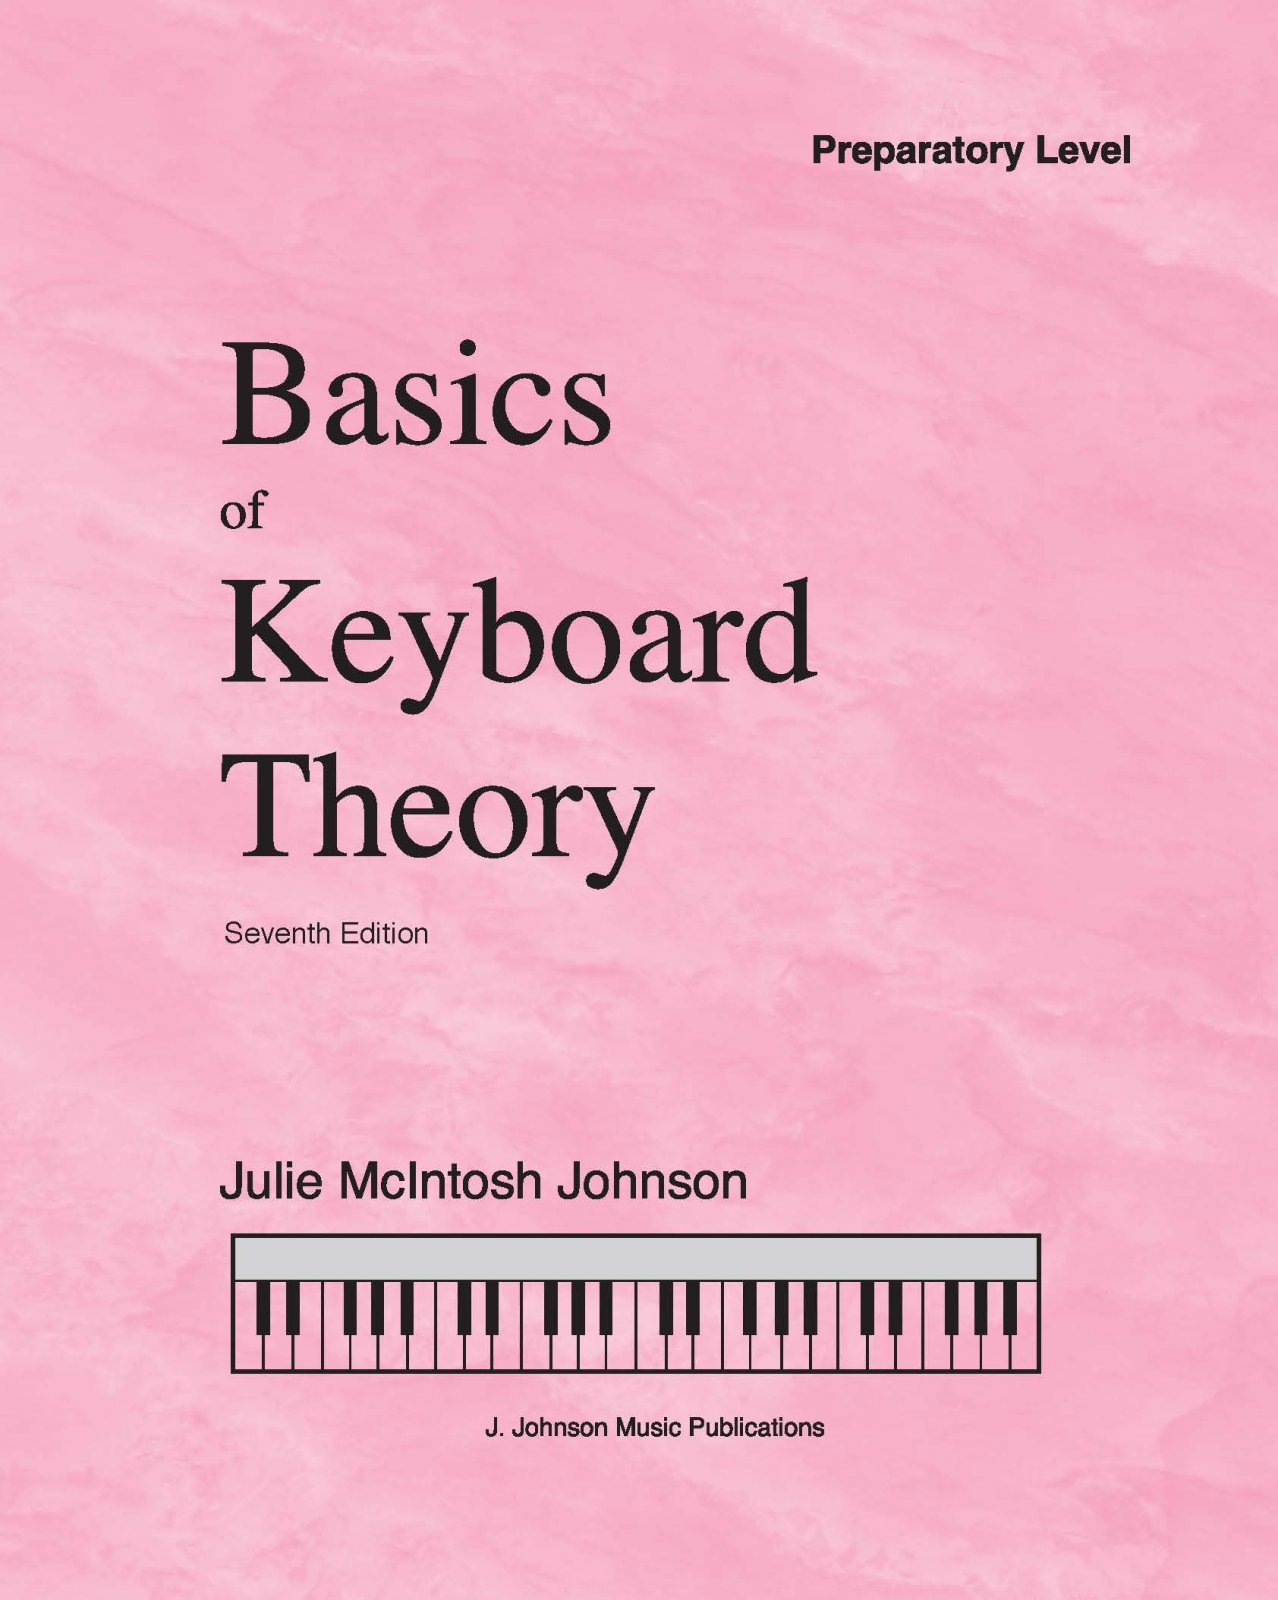 Basics Of Keyboard Theory Prep level Julie Johnson